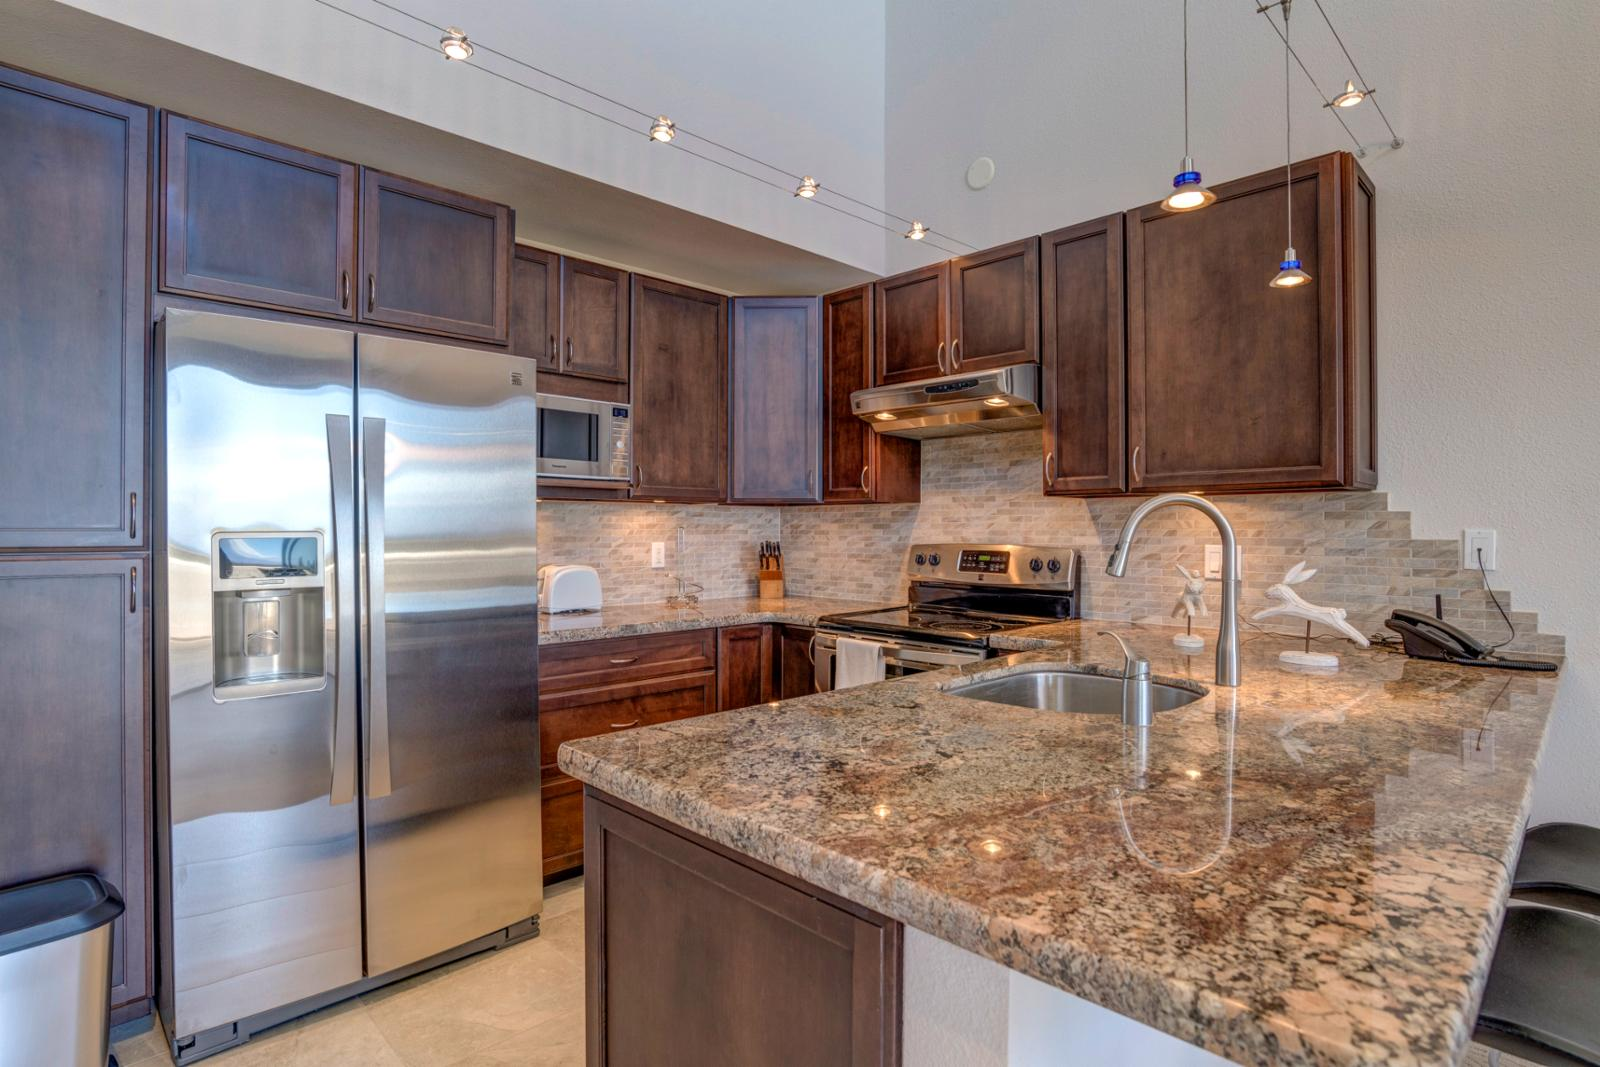 Upgraded kitchen with luxury back splash and granite finishings